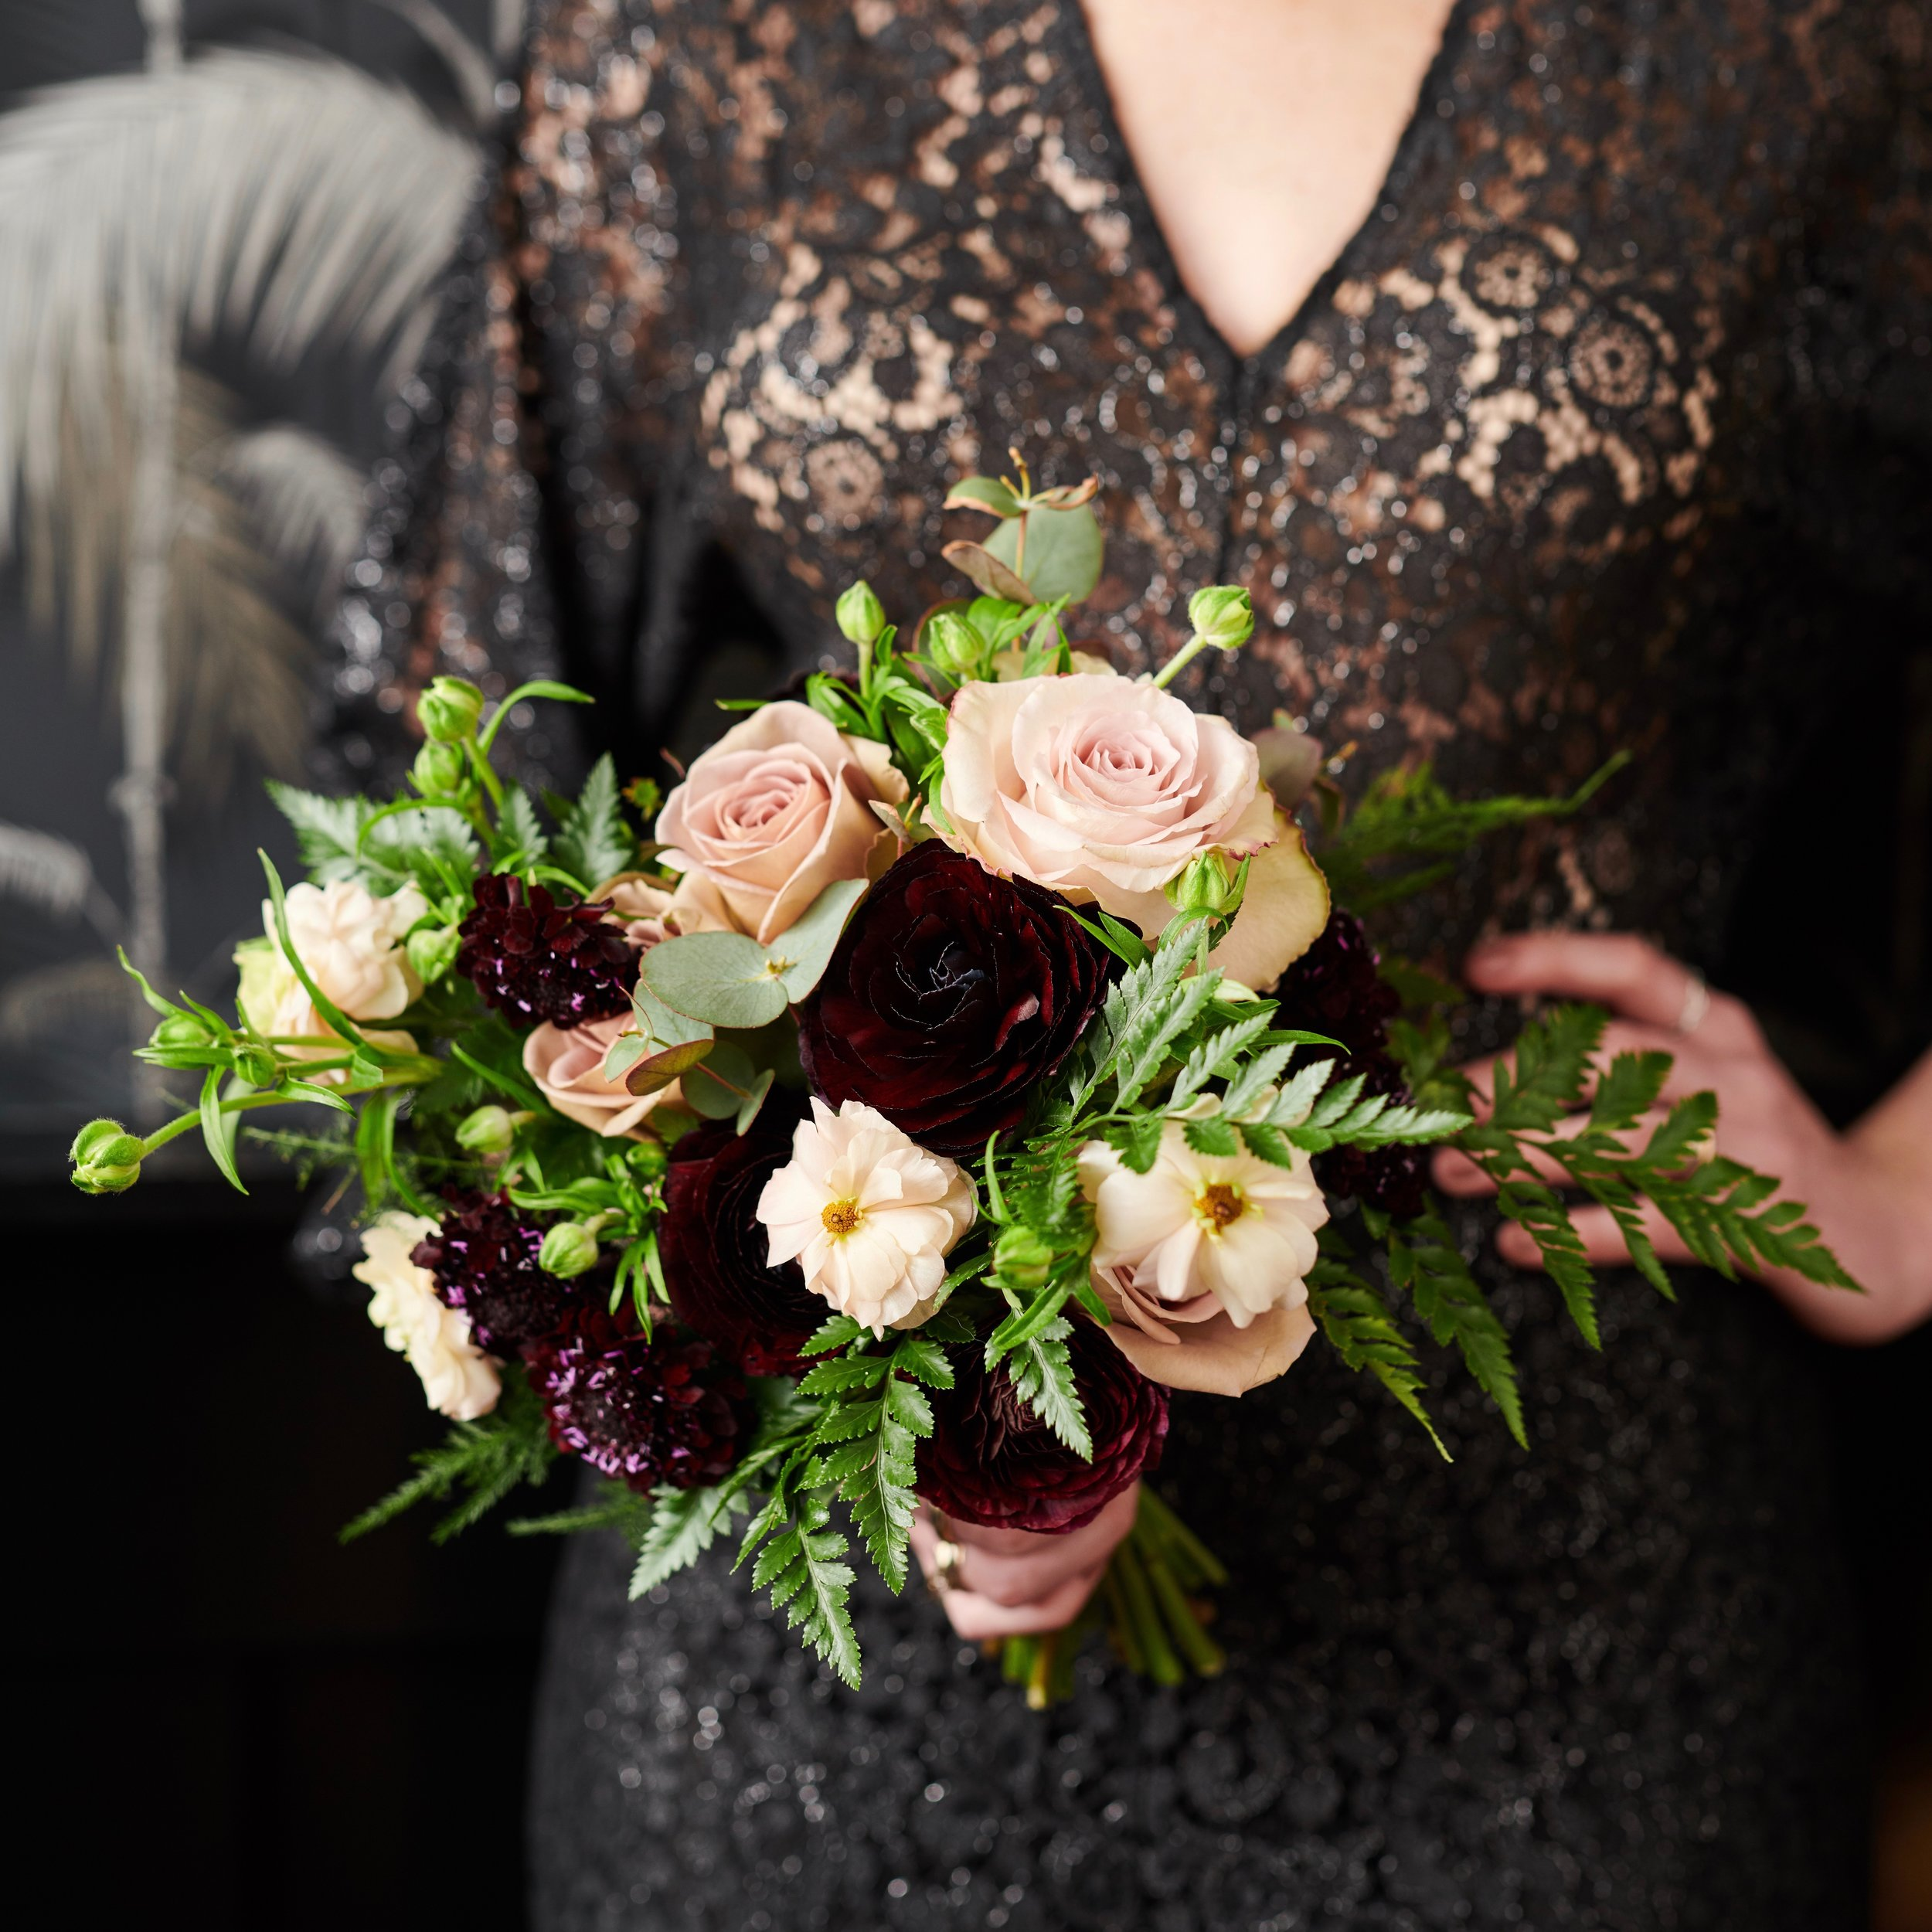 The New York Mimosa Floral Design